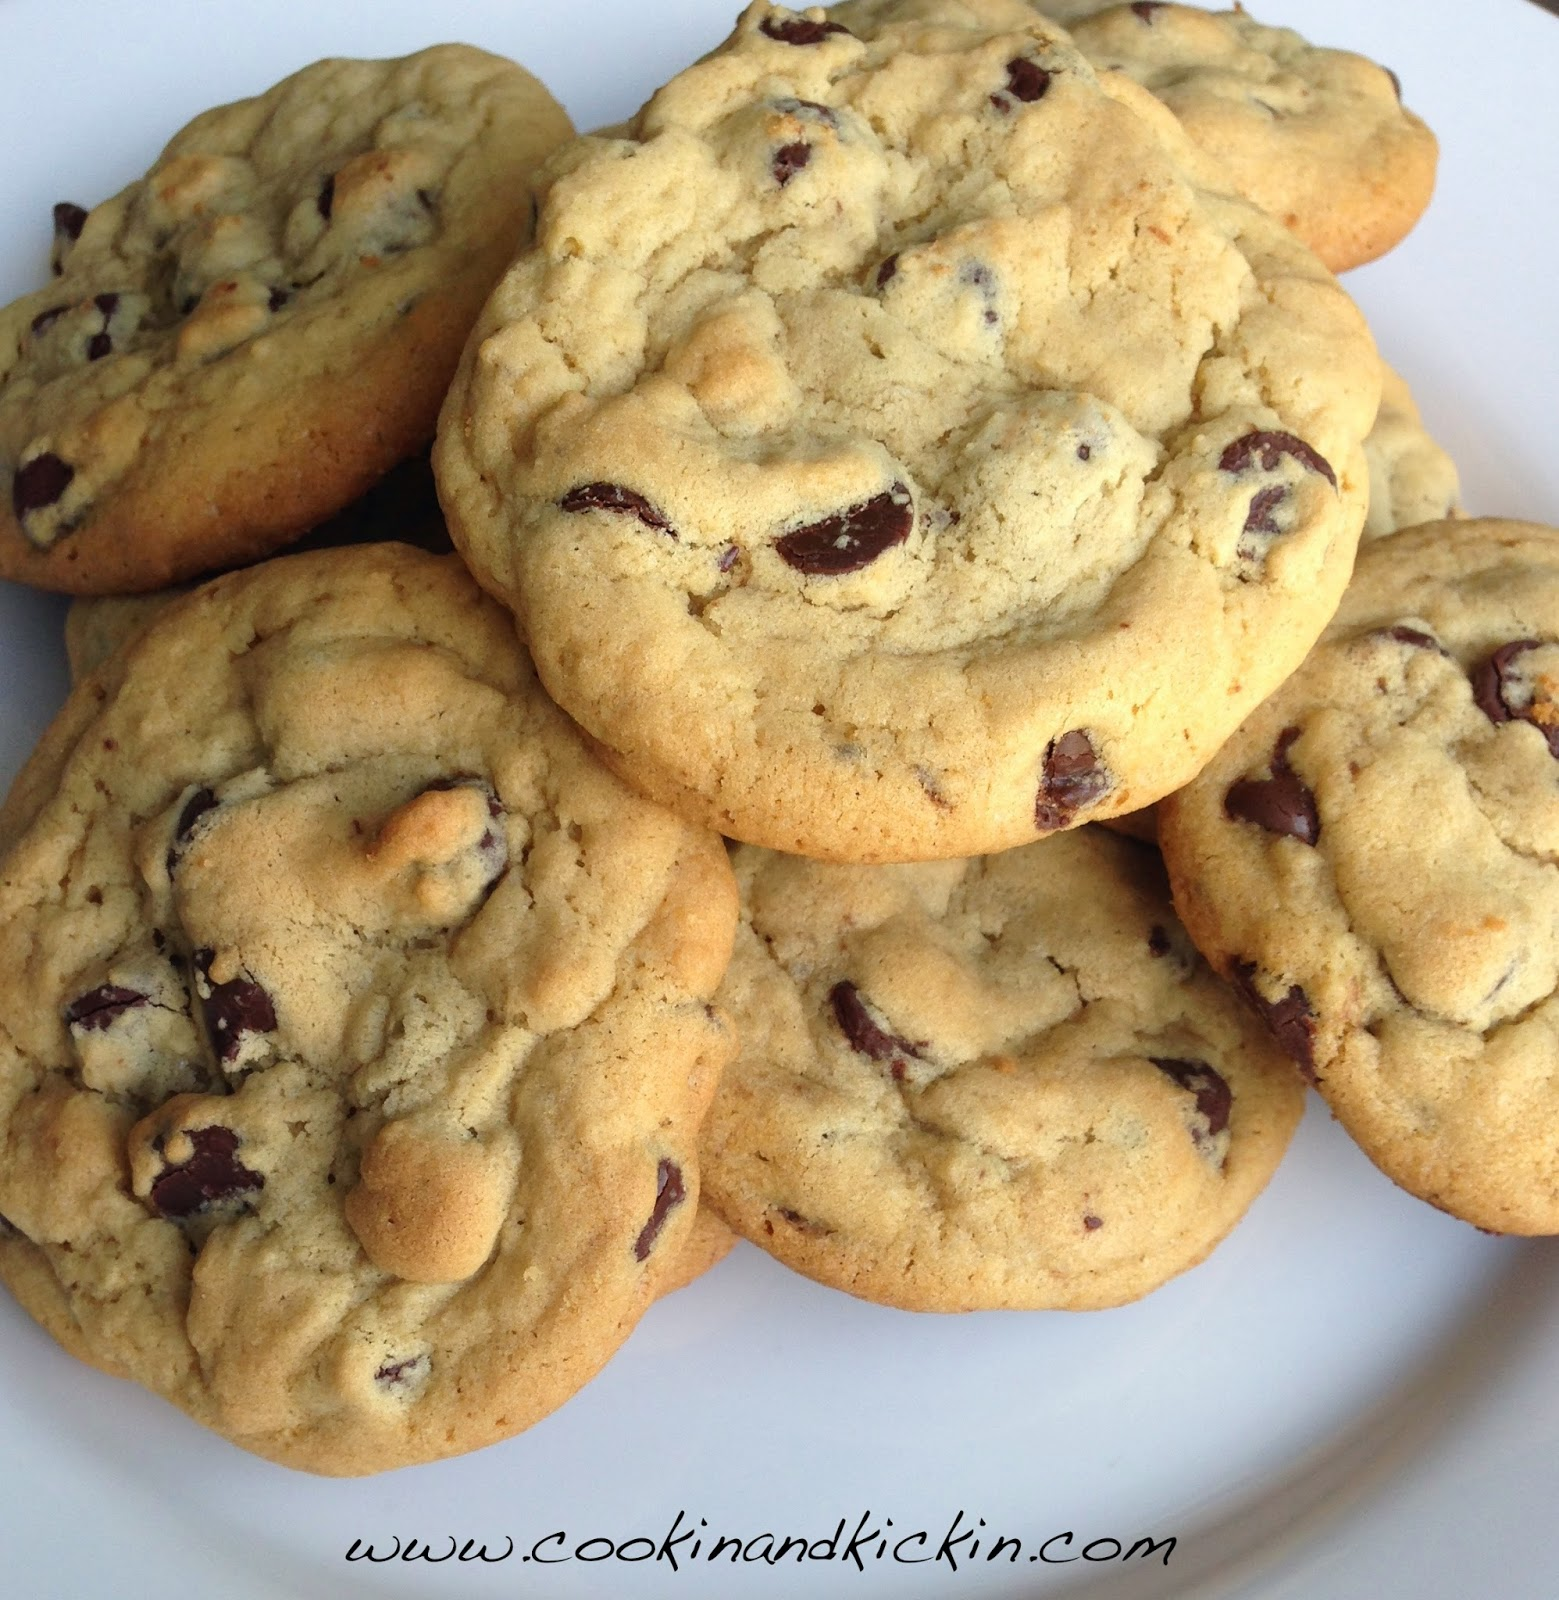 Pudding Mix Chocolate Chip Cookies | Cookin' And Kickin'